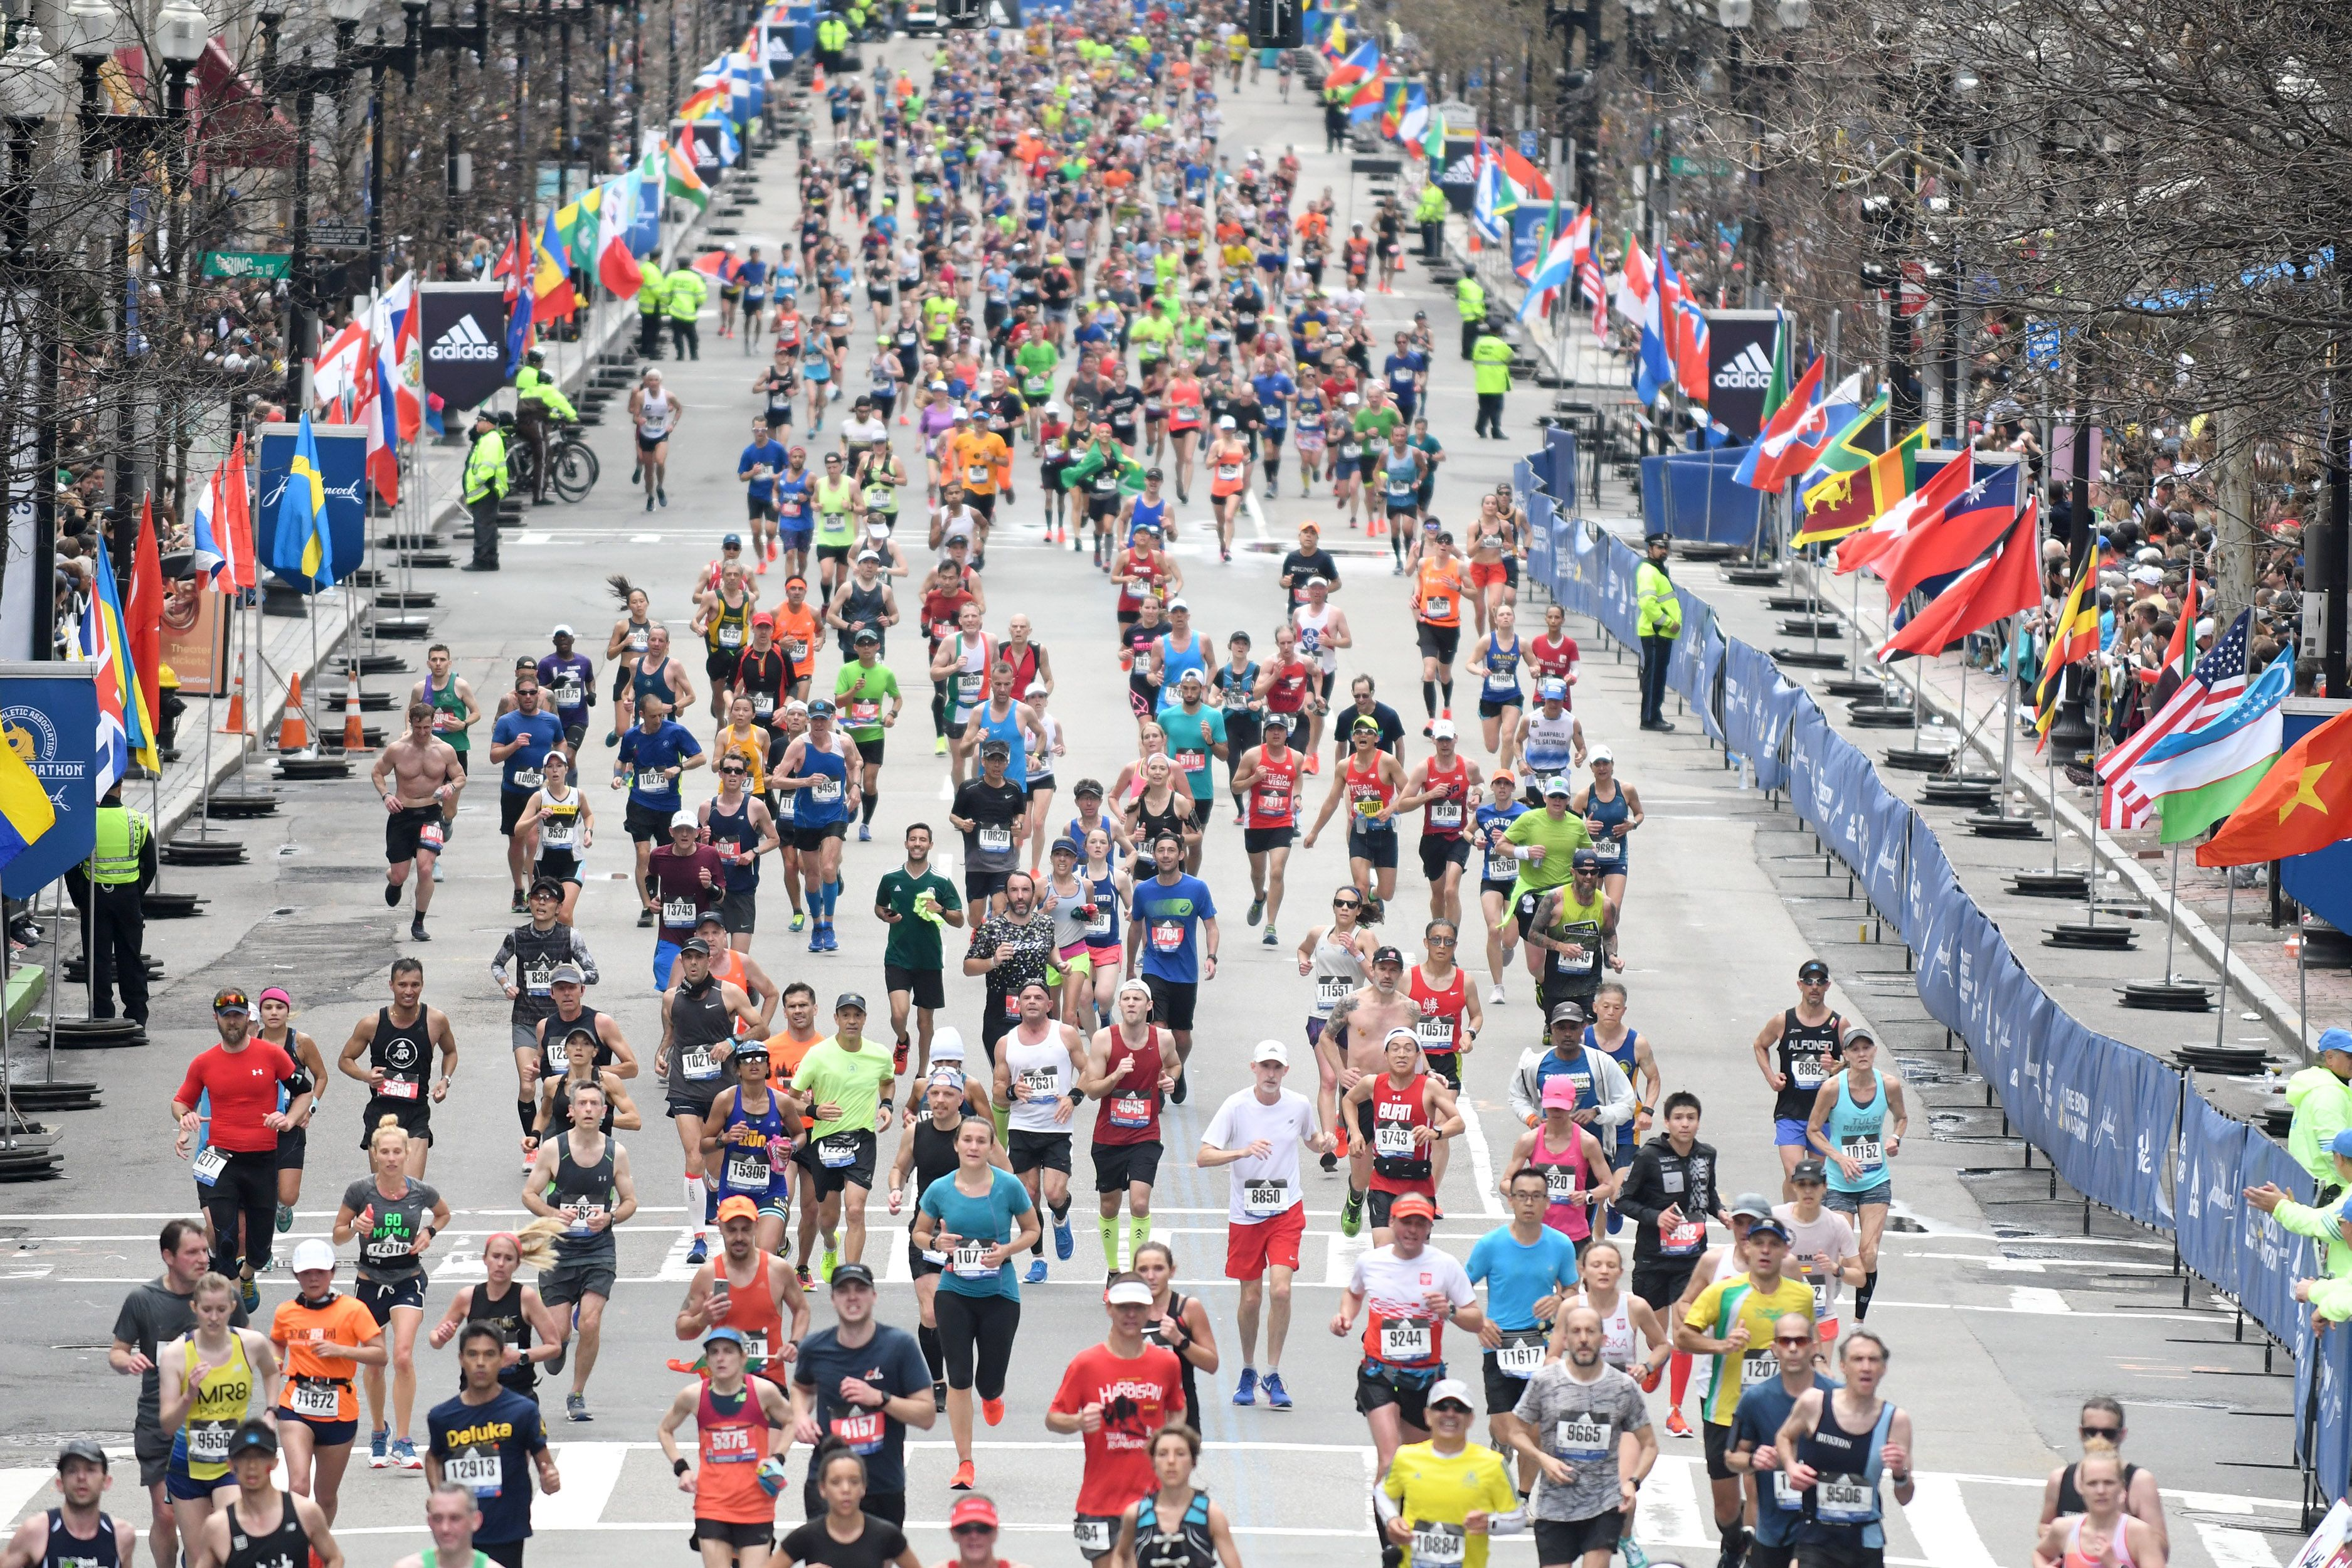 Boston Marathon canceled for 1st time